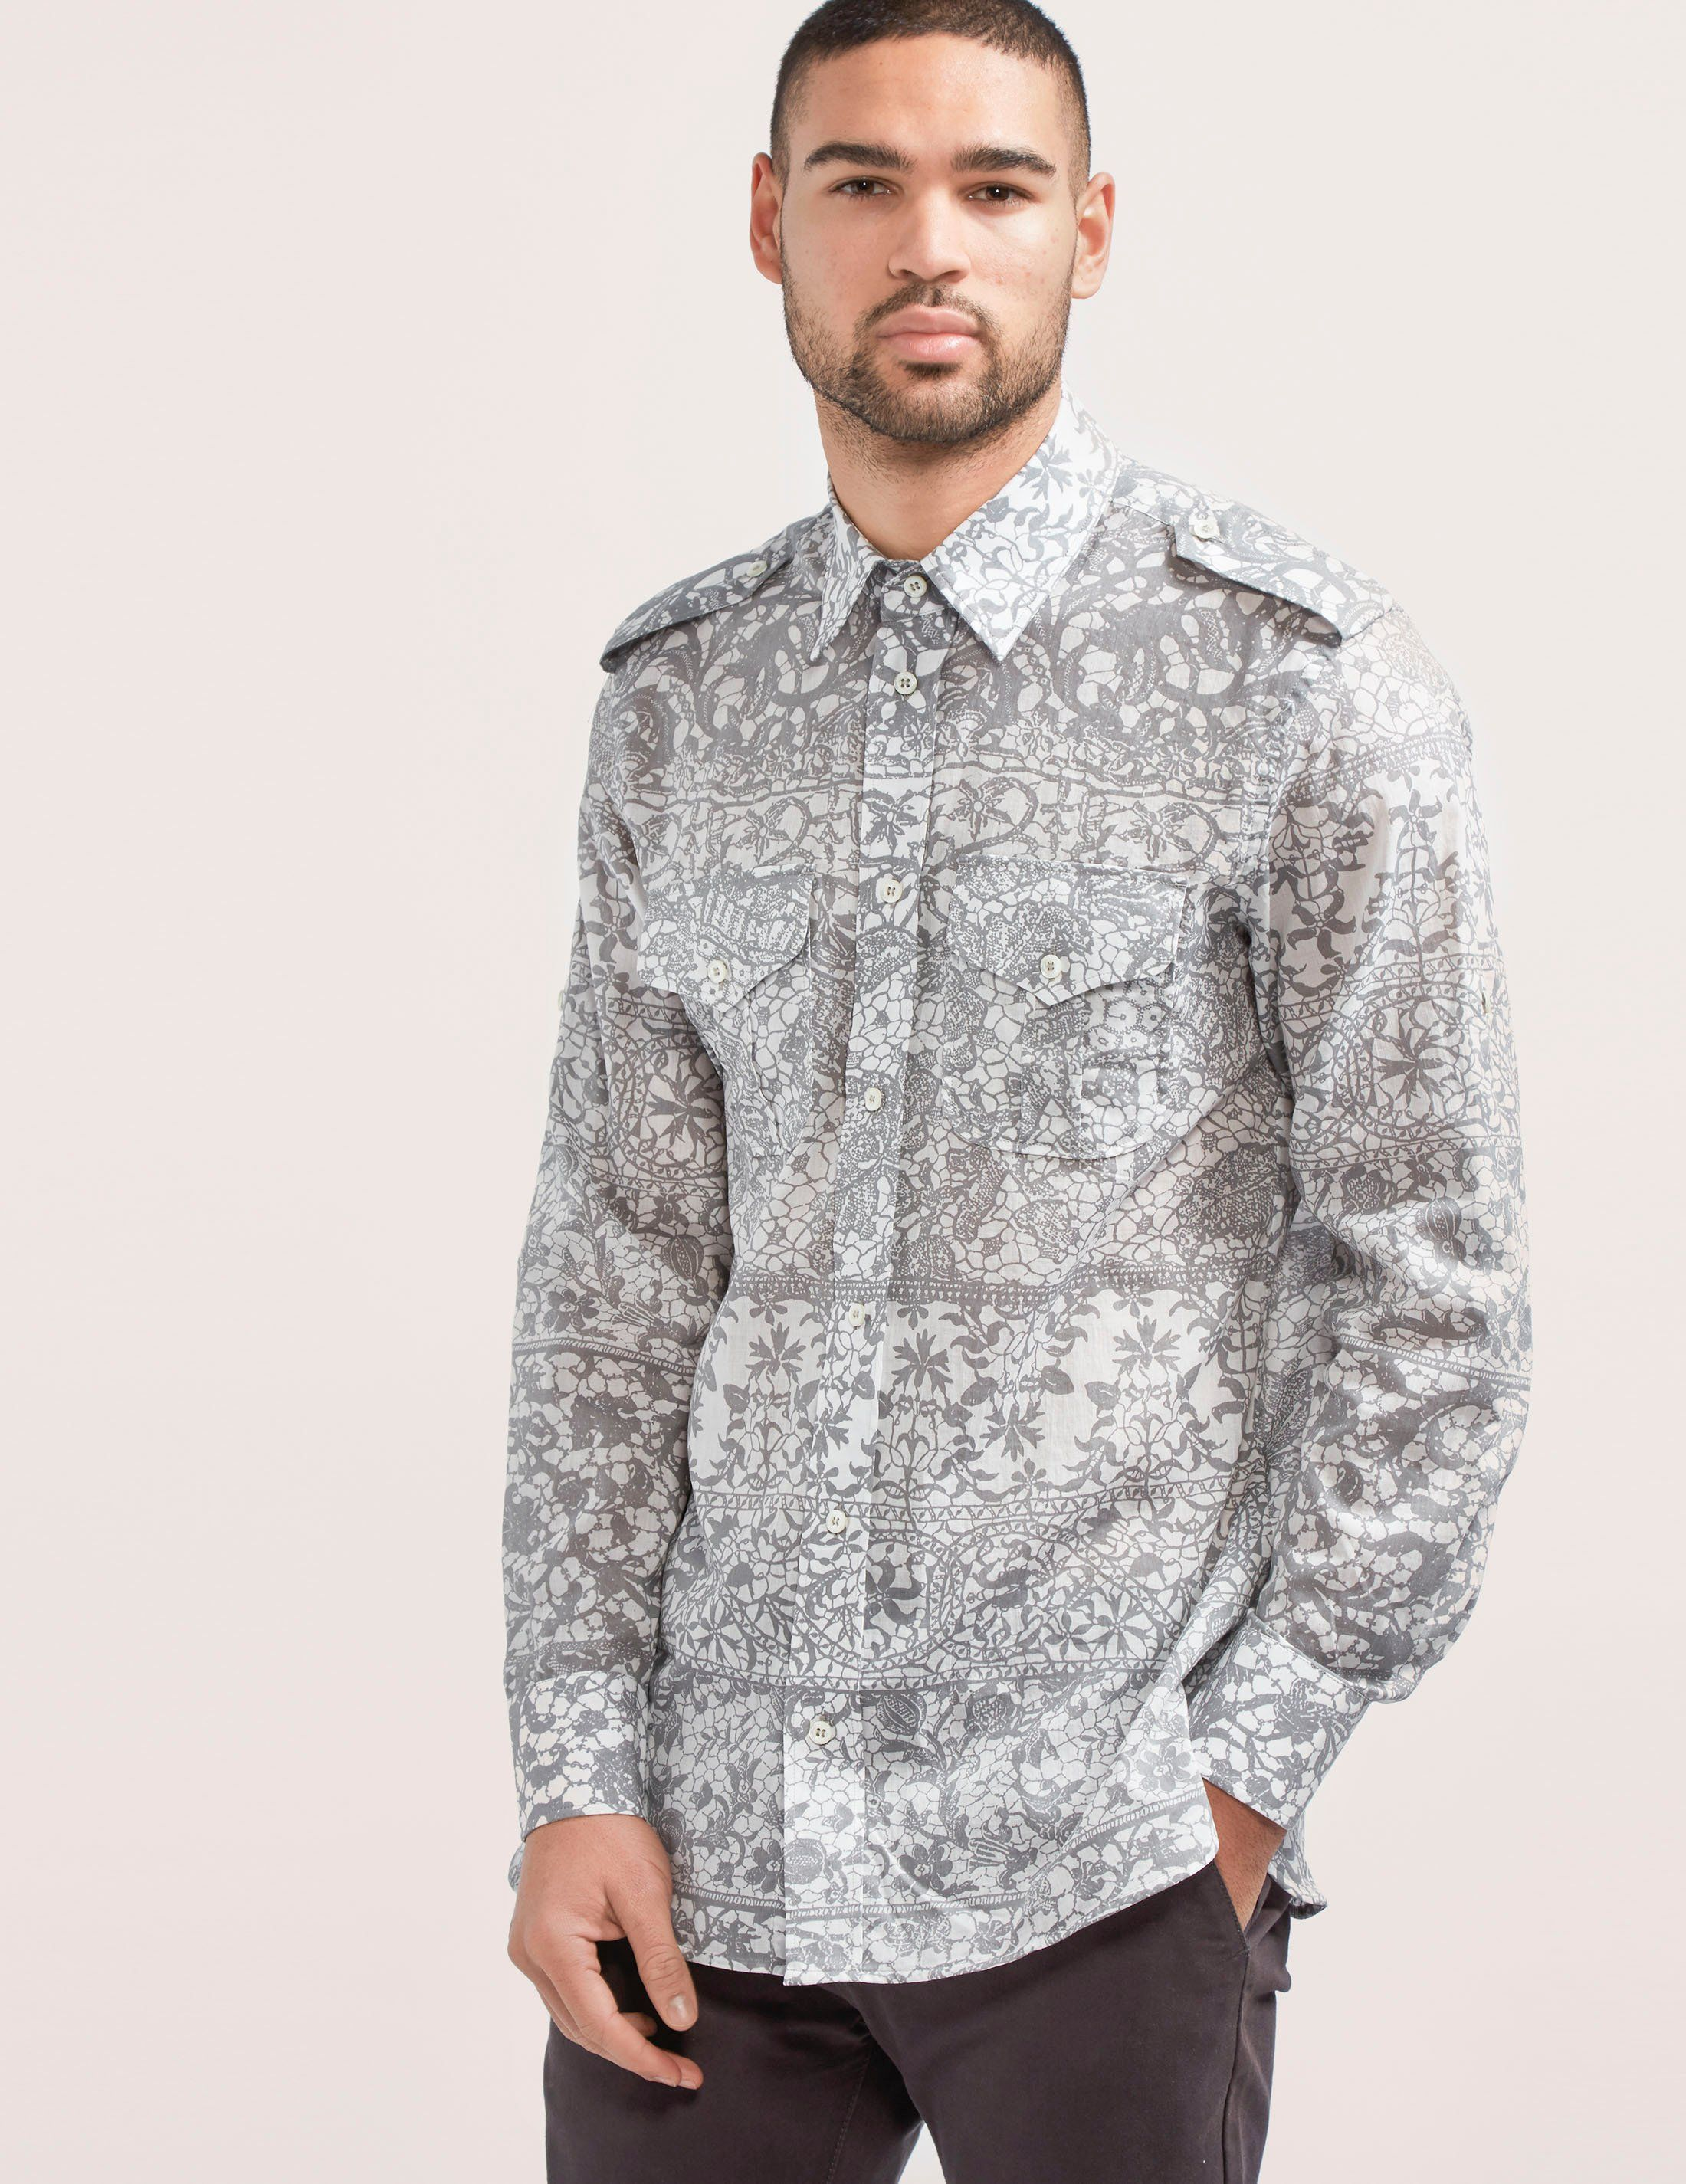 Vivienne Westwood Military Shirt